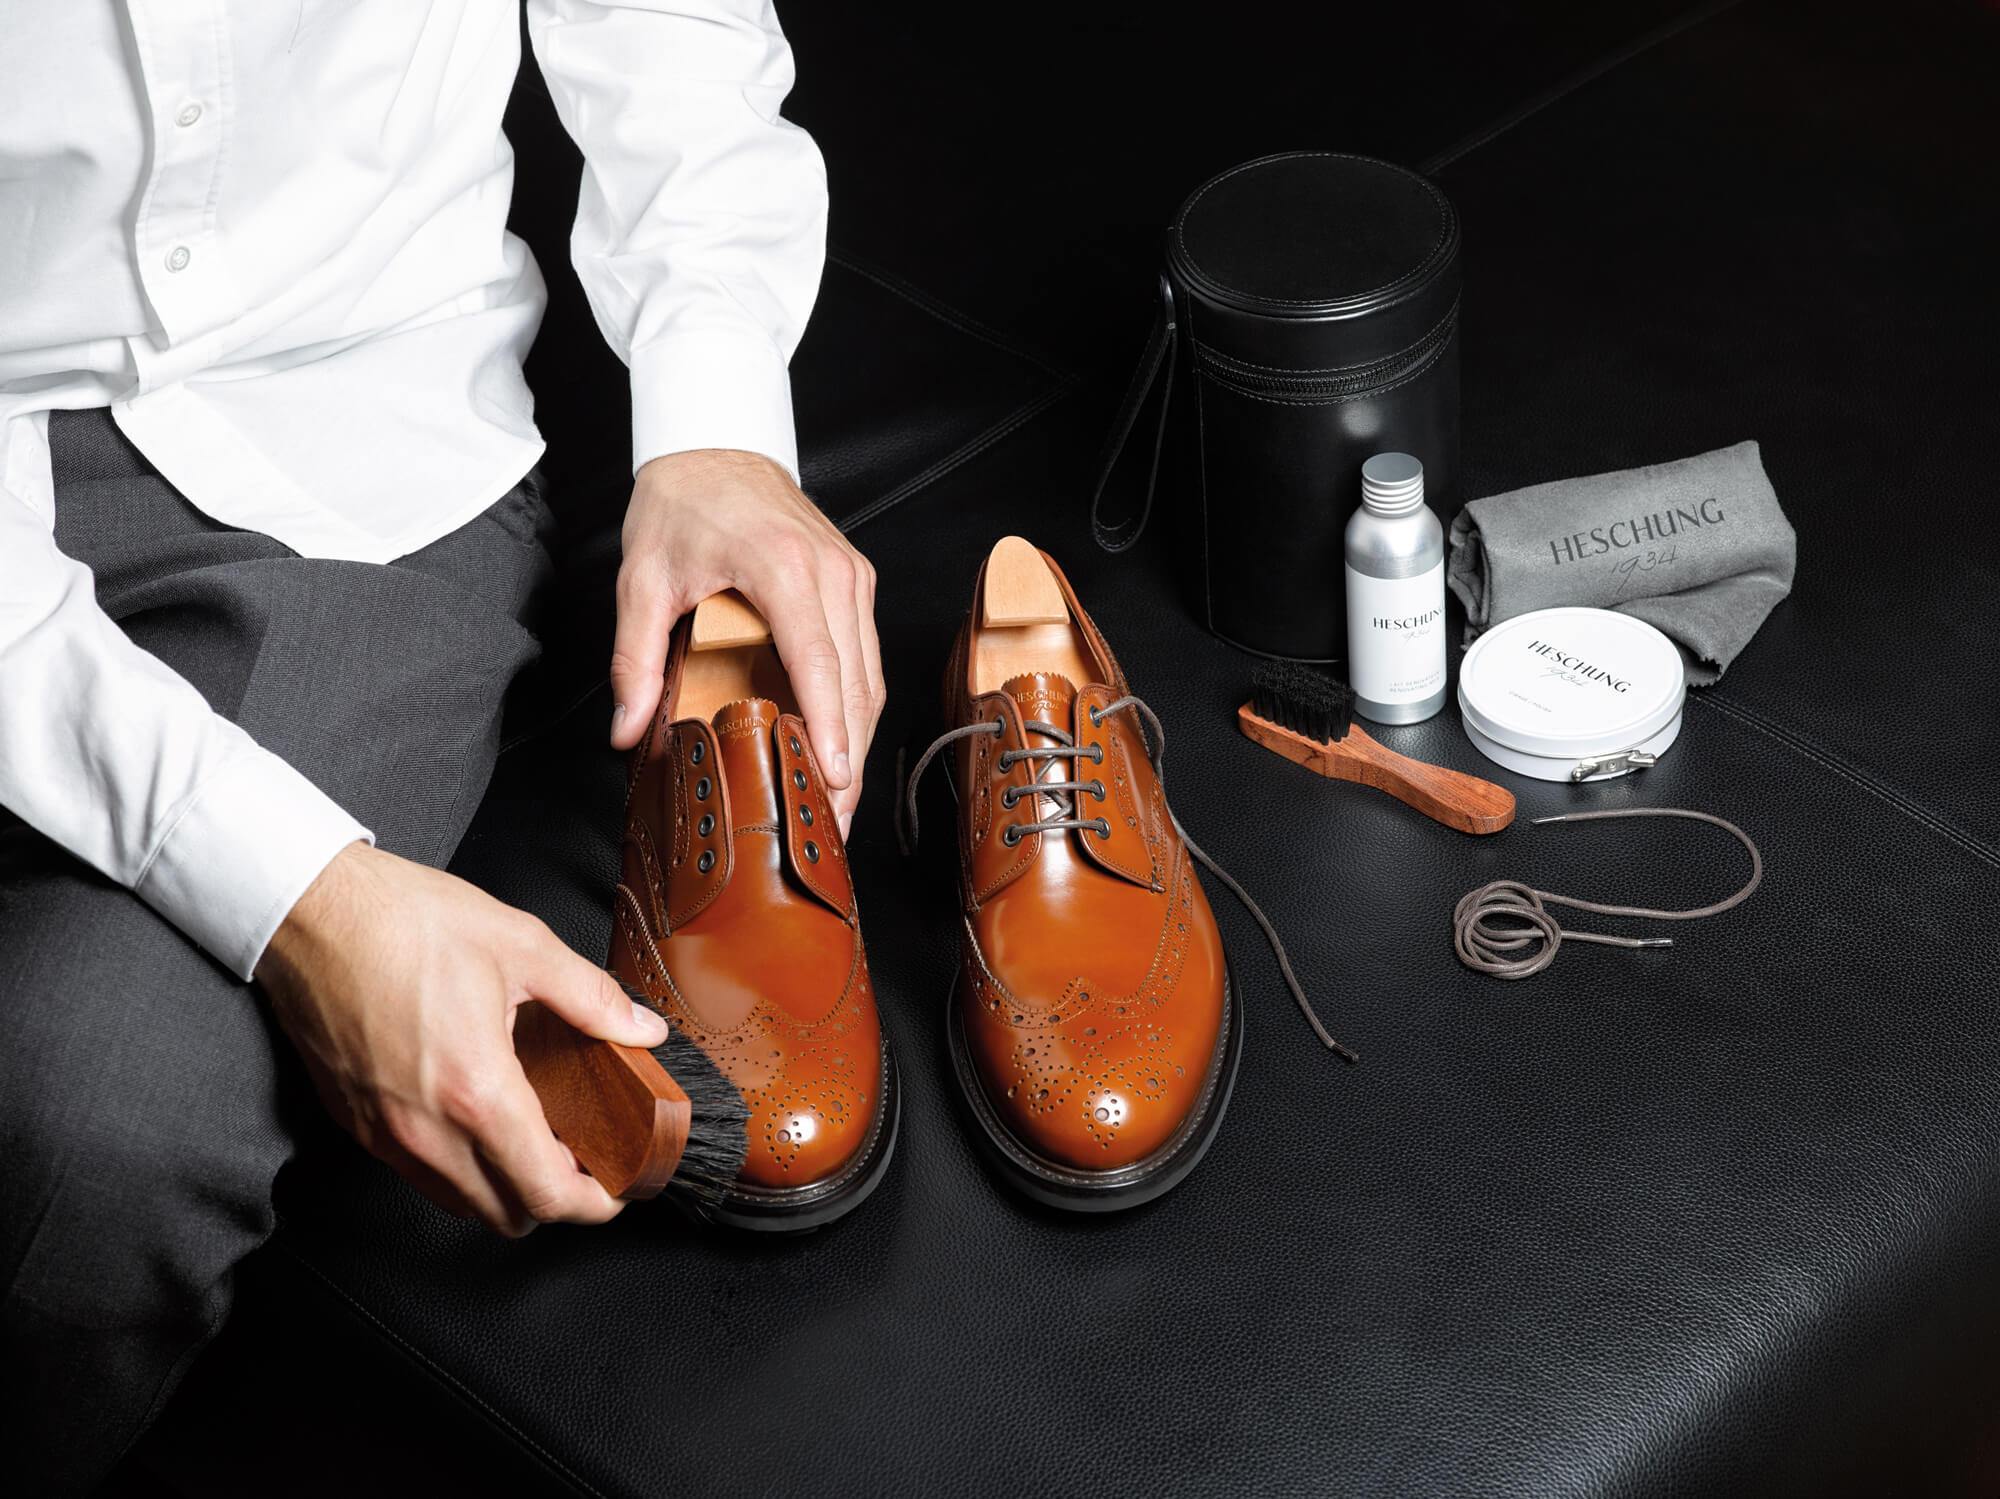 The art of shoe care